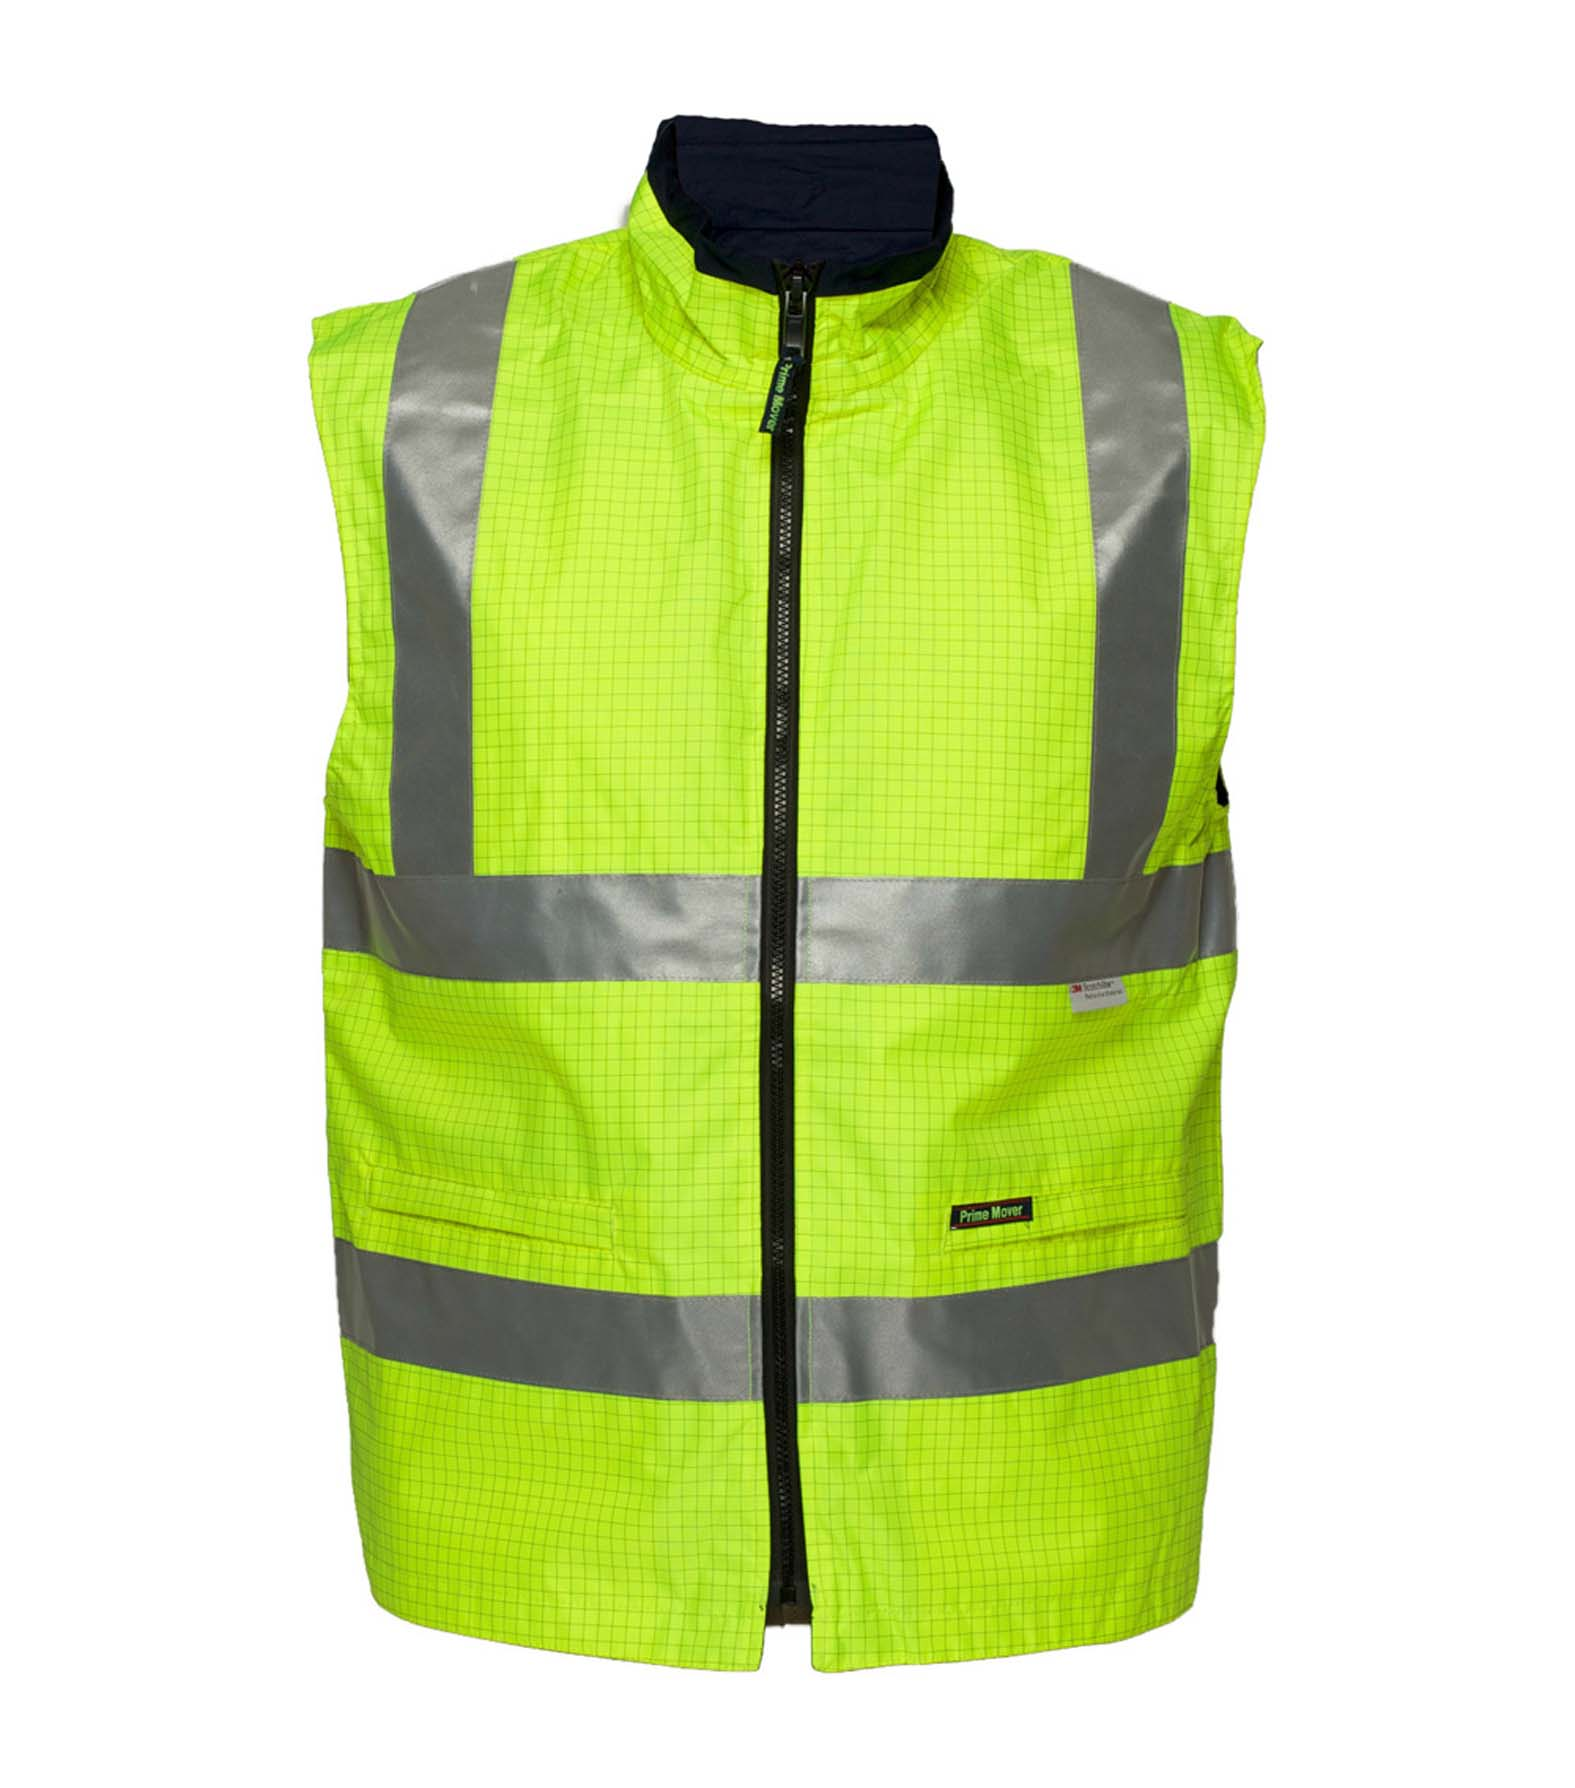 bf1e66366d4a6 PRIME MOVER WORKWEAR   Hi-Vis Workwear Safety Vest Anti Static.